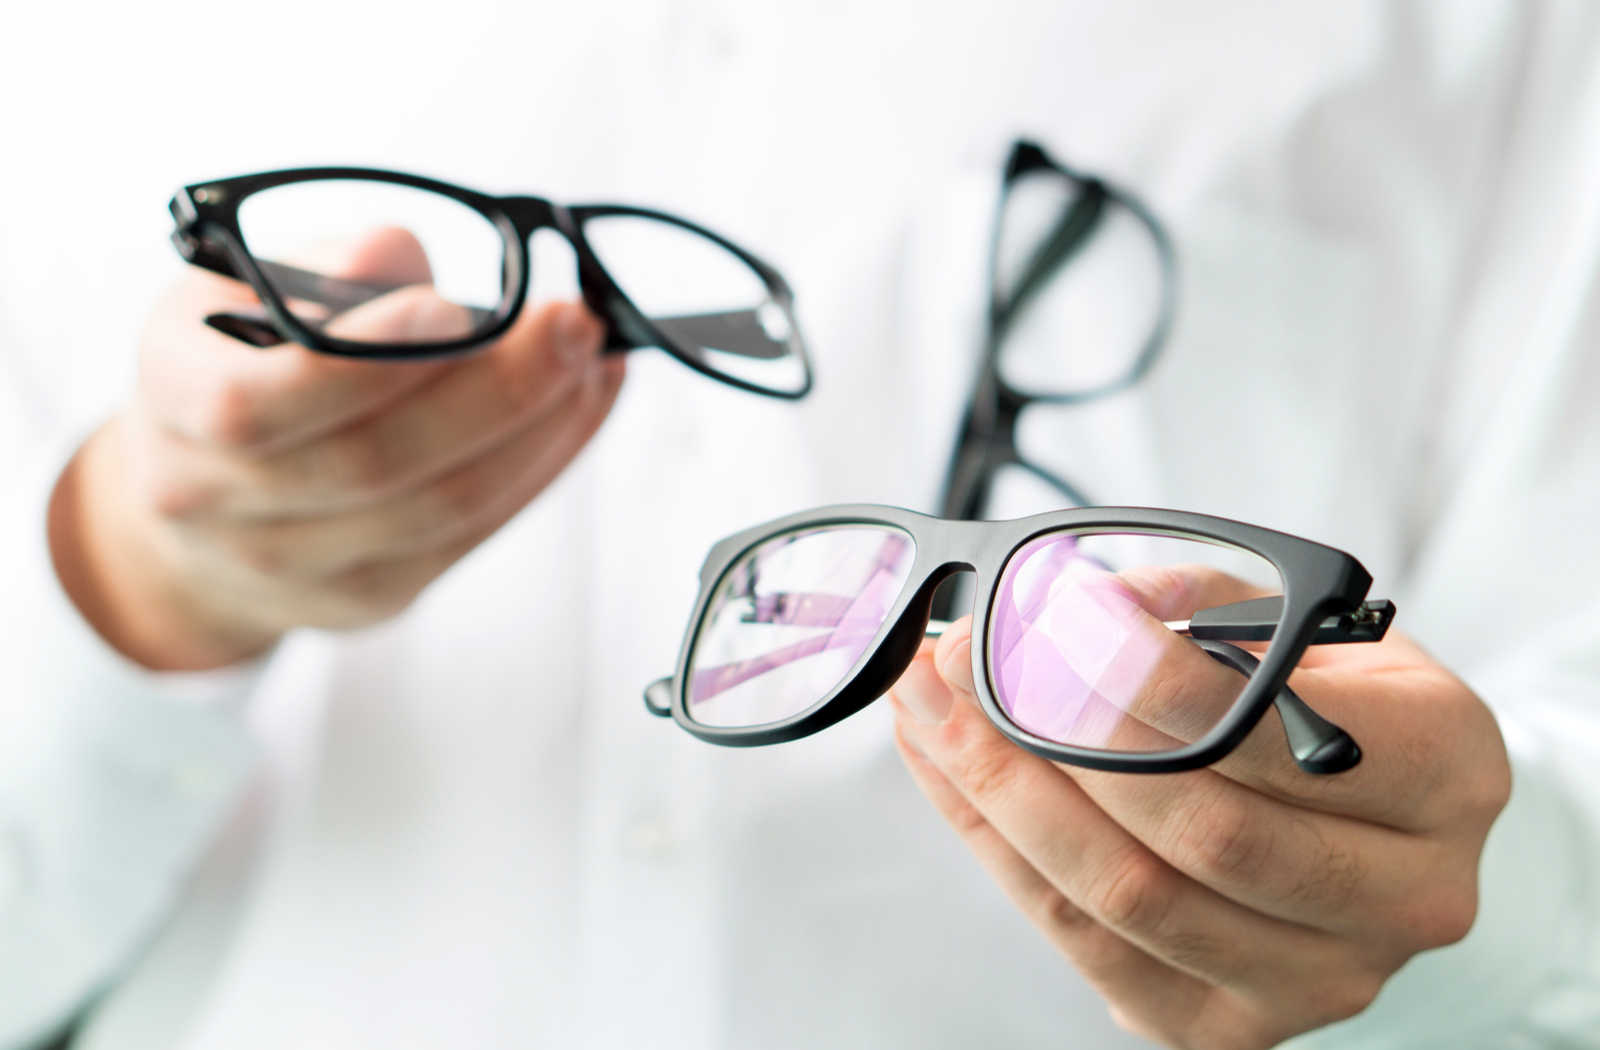 Optometrist holding 2 pairs of glasses to show the difference in lens powers